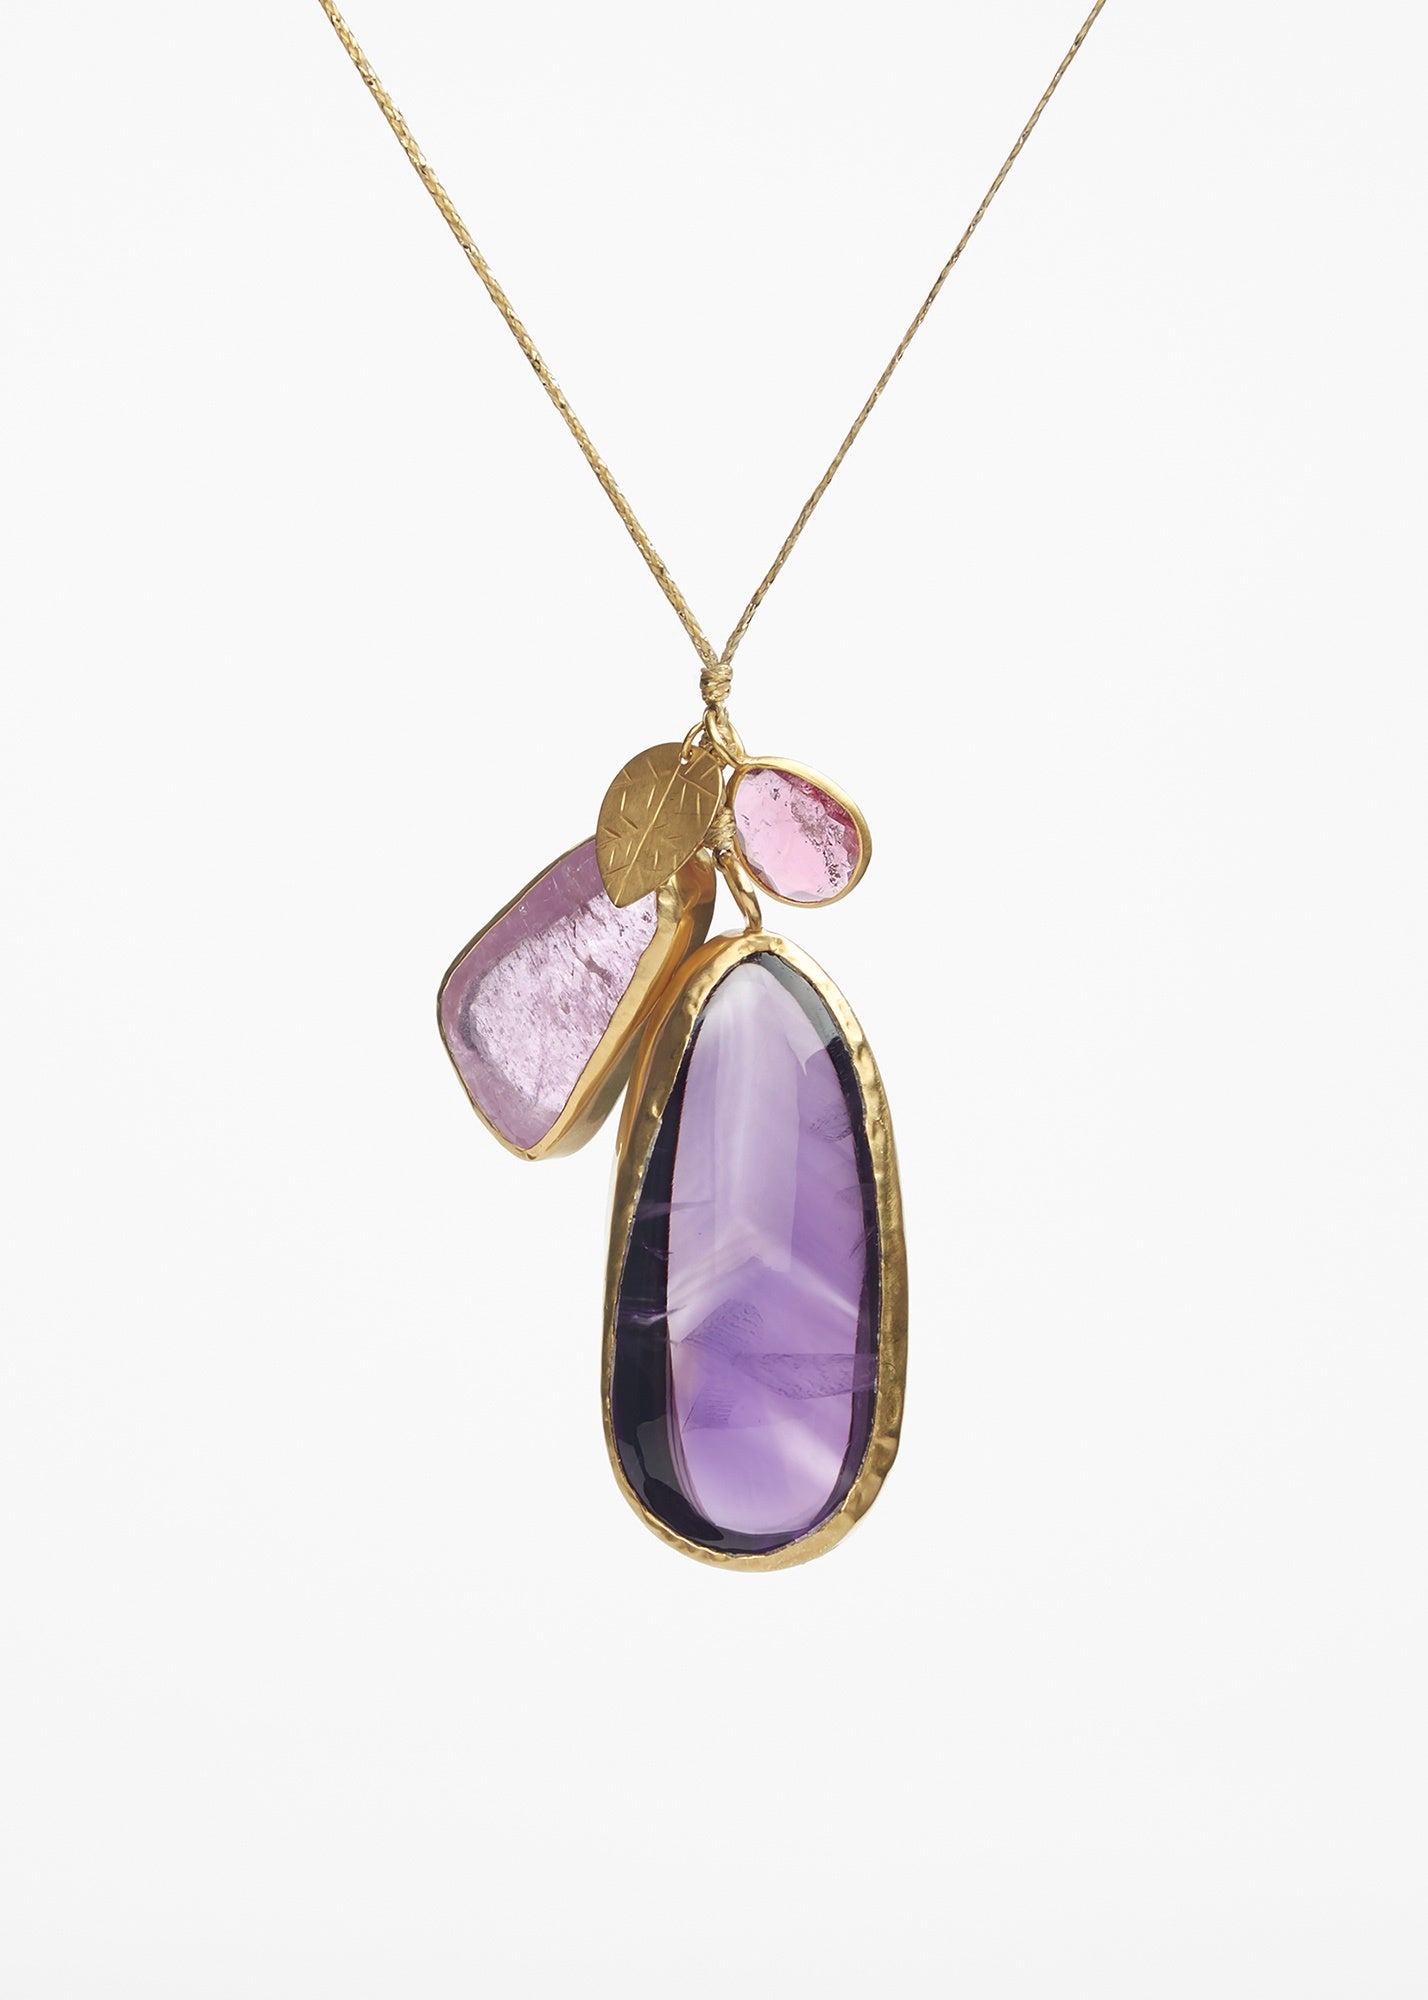 Triple Amethyst Pendant Necklace On Cord